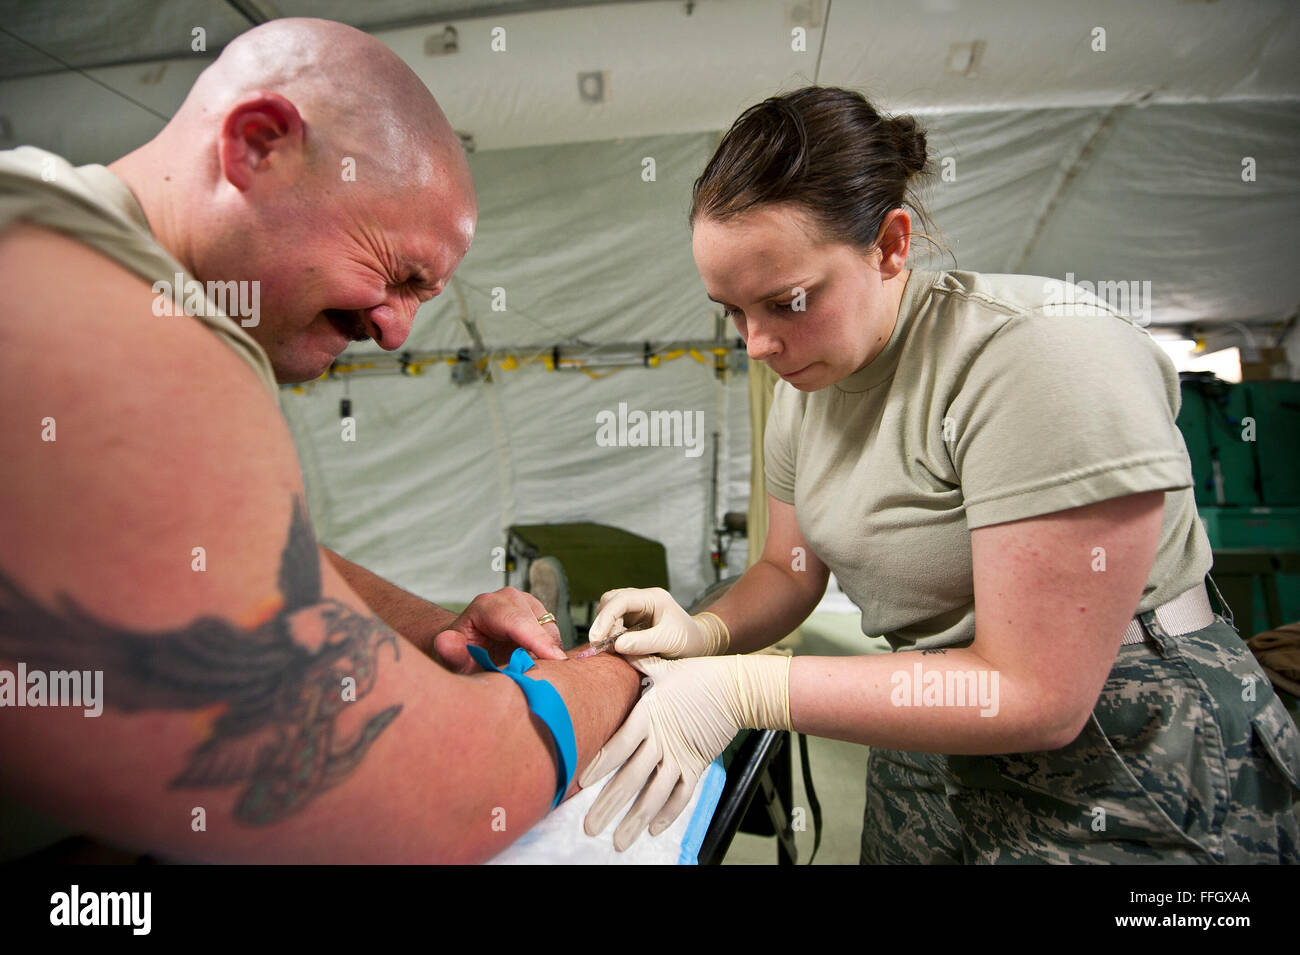 Airman 1st Class Elise Black attempts to administer her first IV to Master Sgt. Lukus Hancock, a fellow CSTARS student. - Stock Image